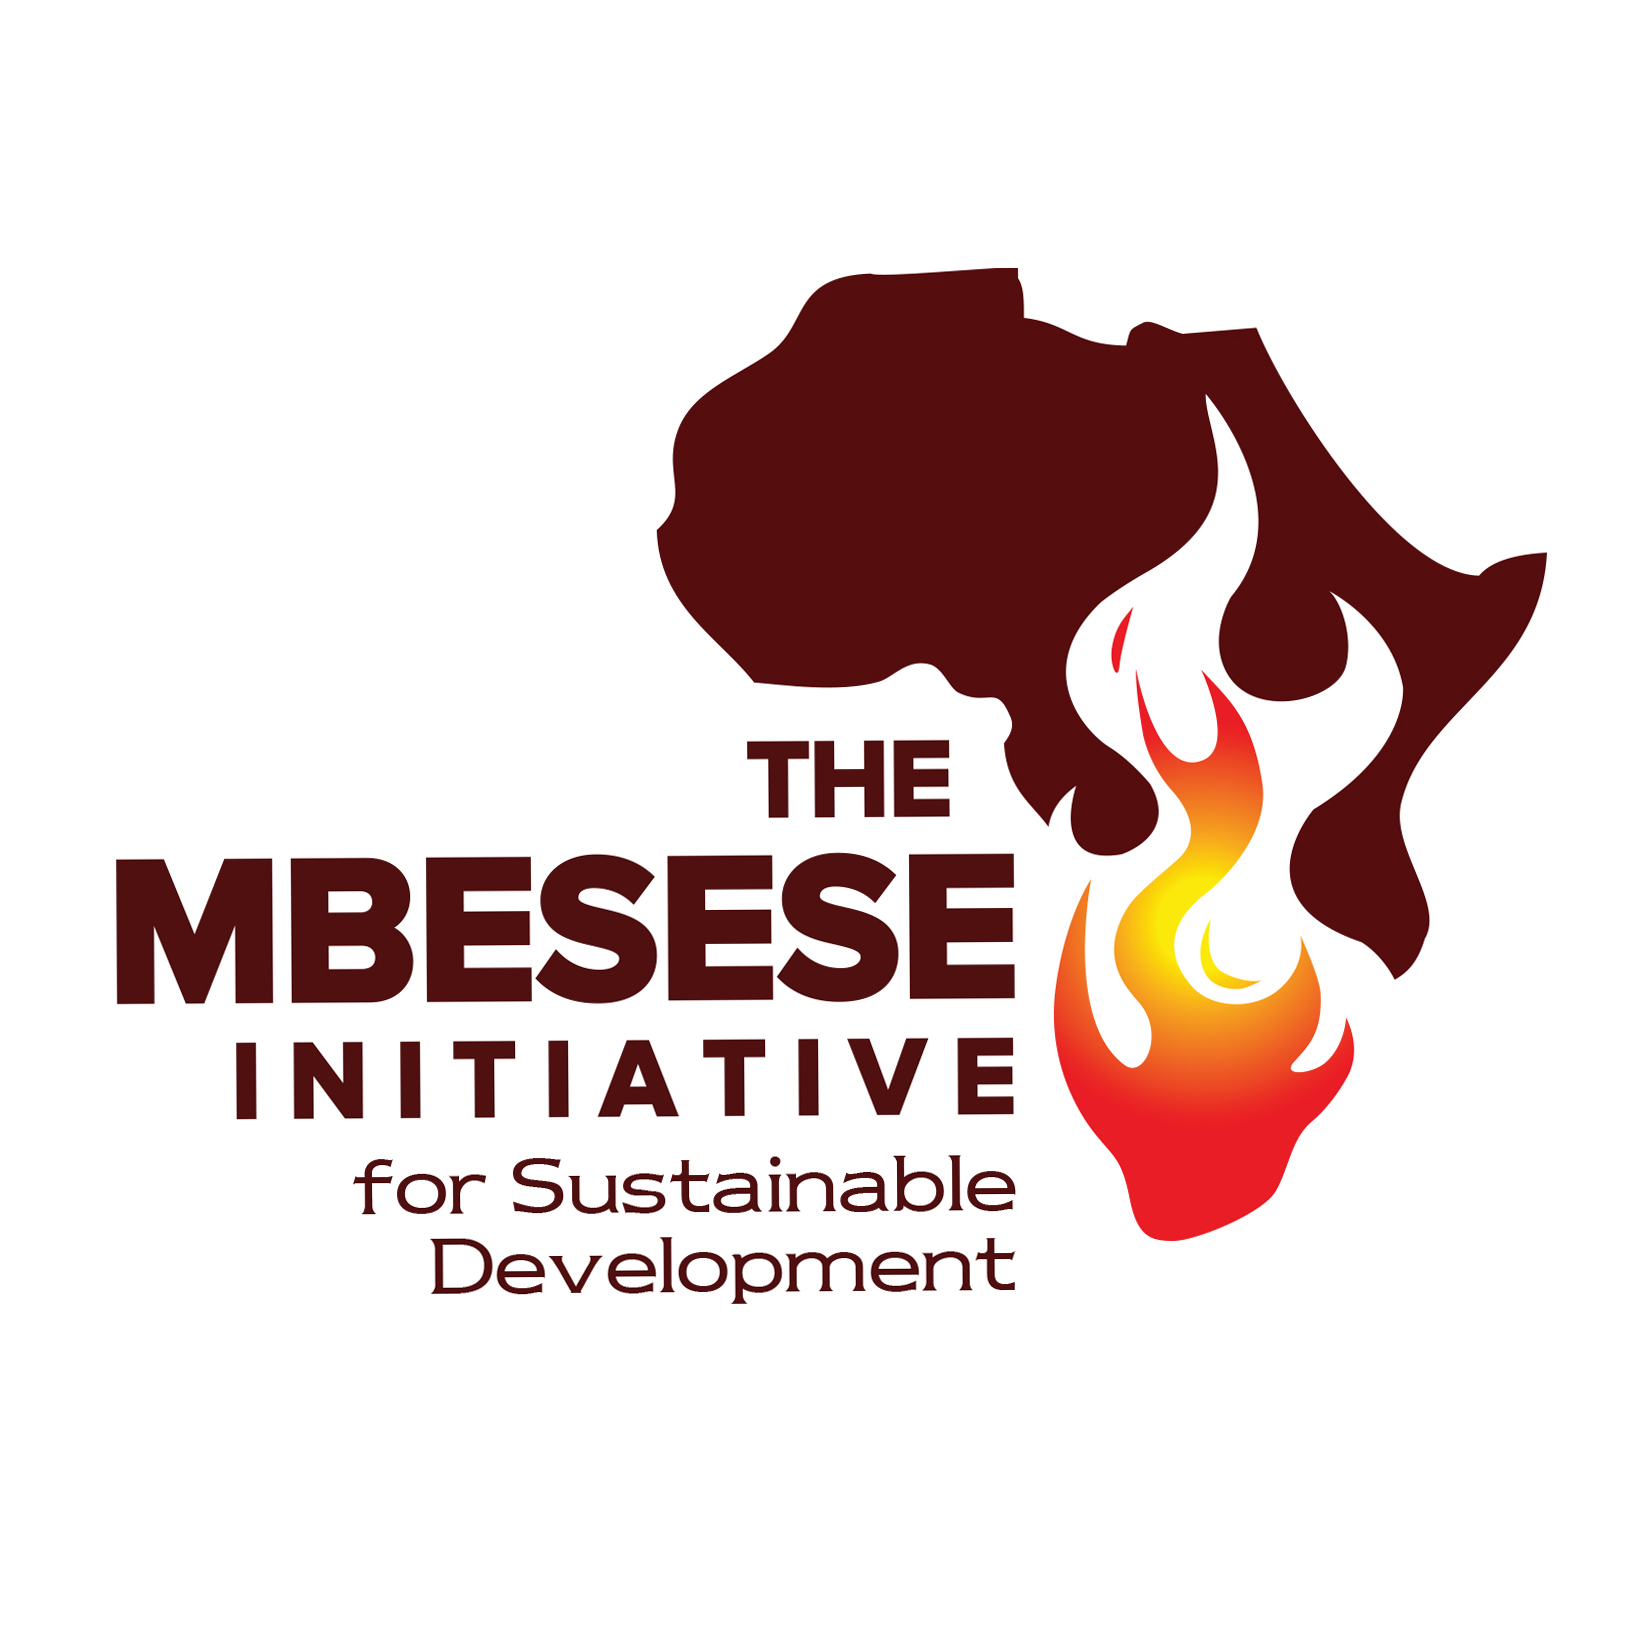 Mbesese Initiative For Sustainable Development Inc